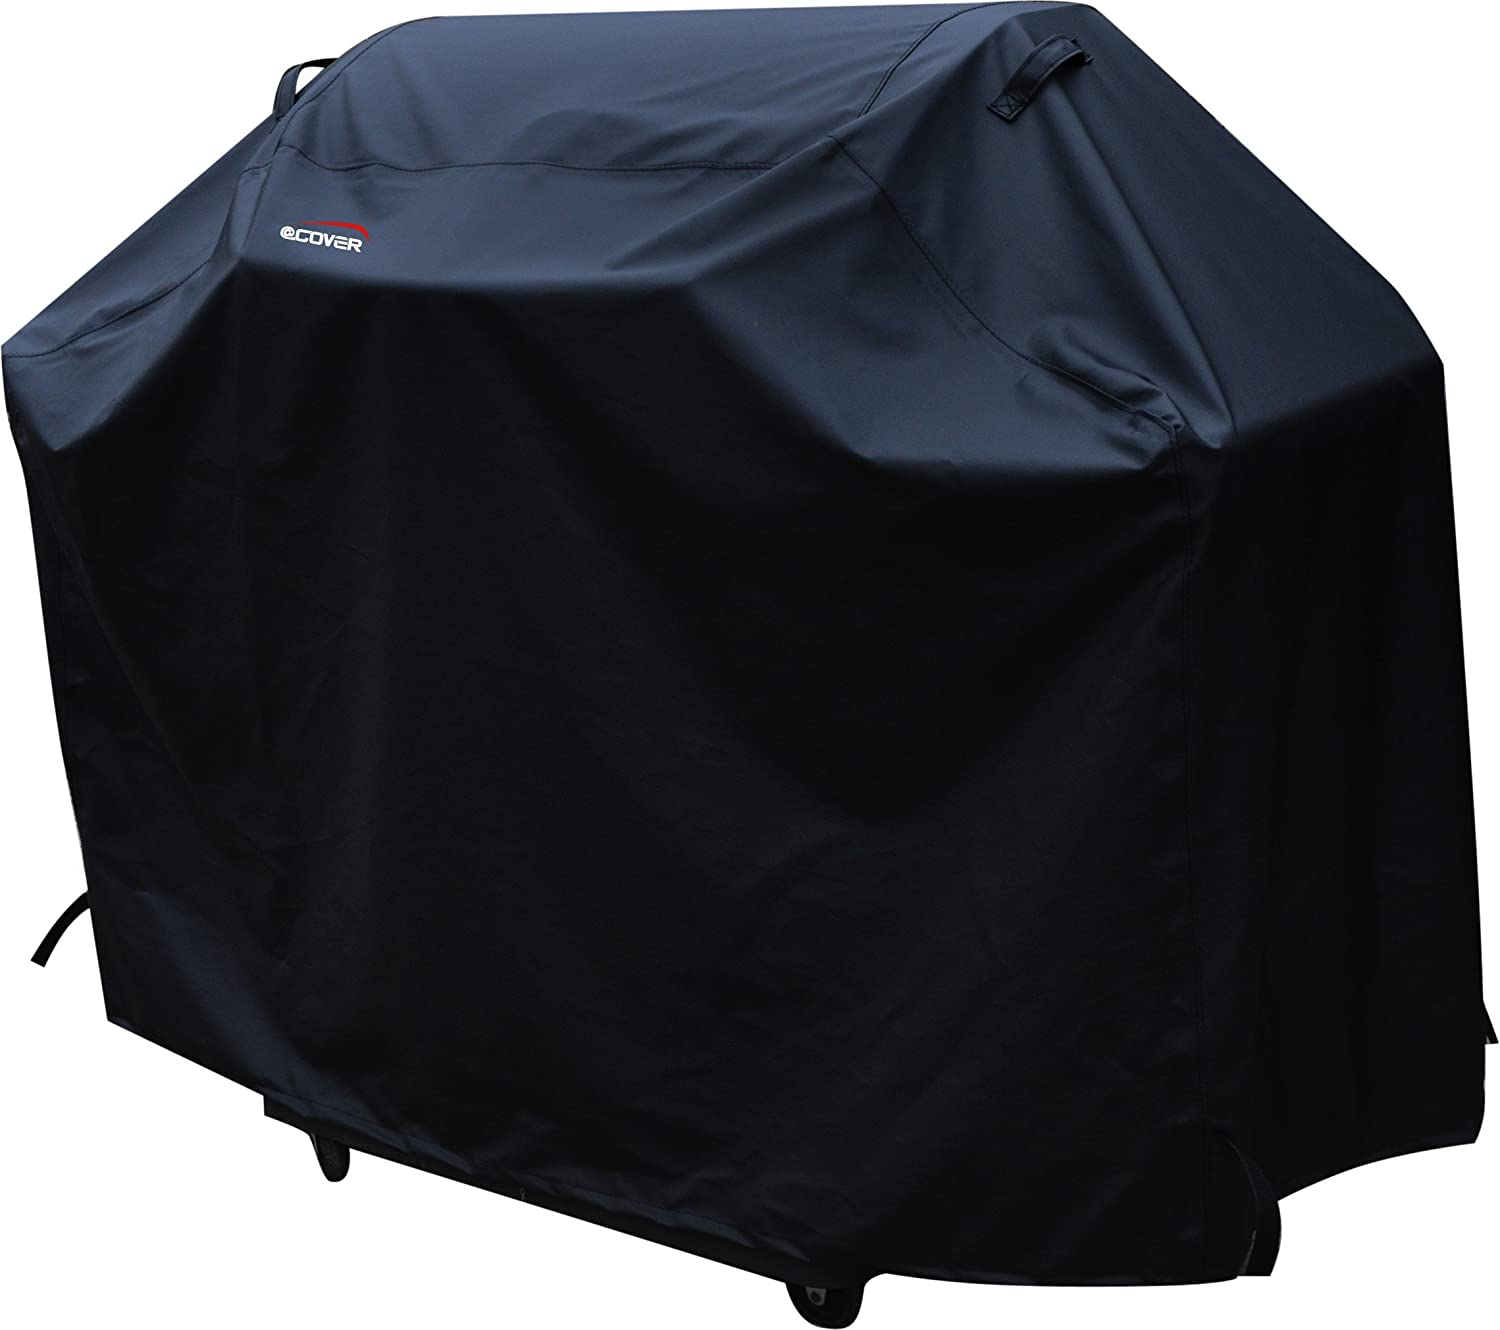 Amazon a1COVER Grill Cover Heavy Duty Waterproof Barbeque